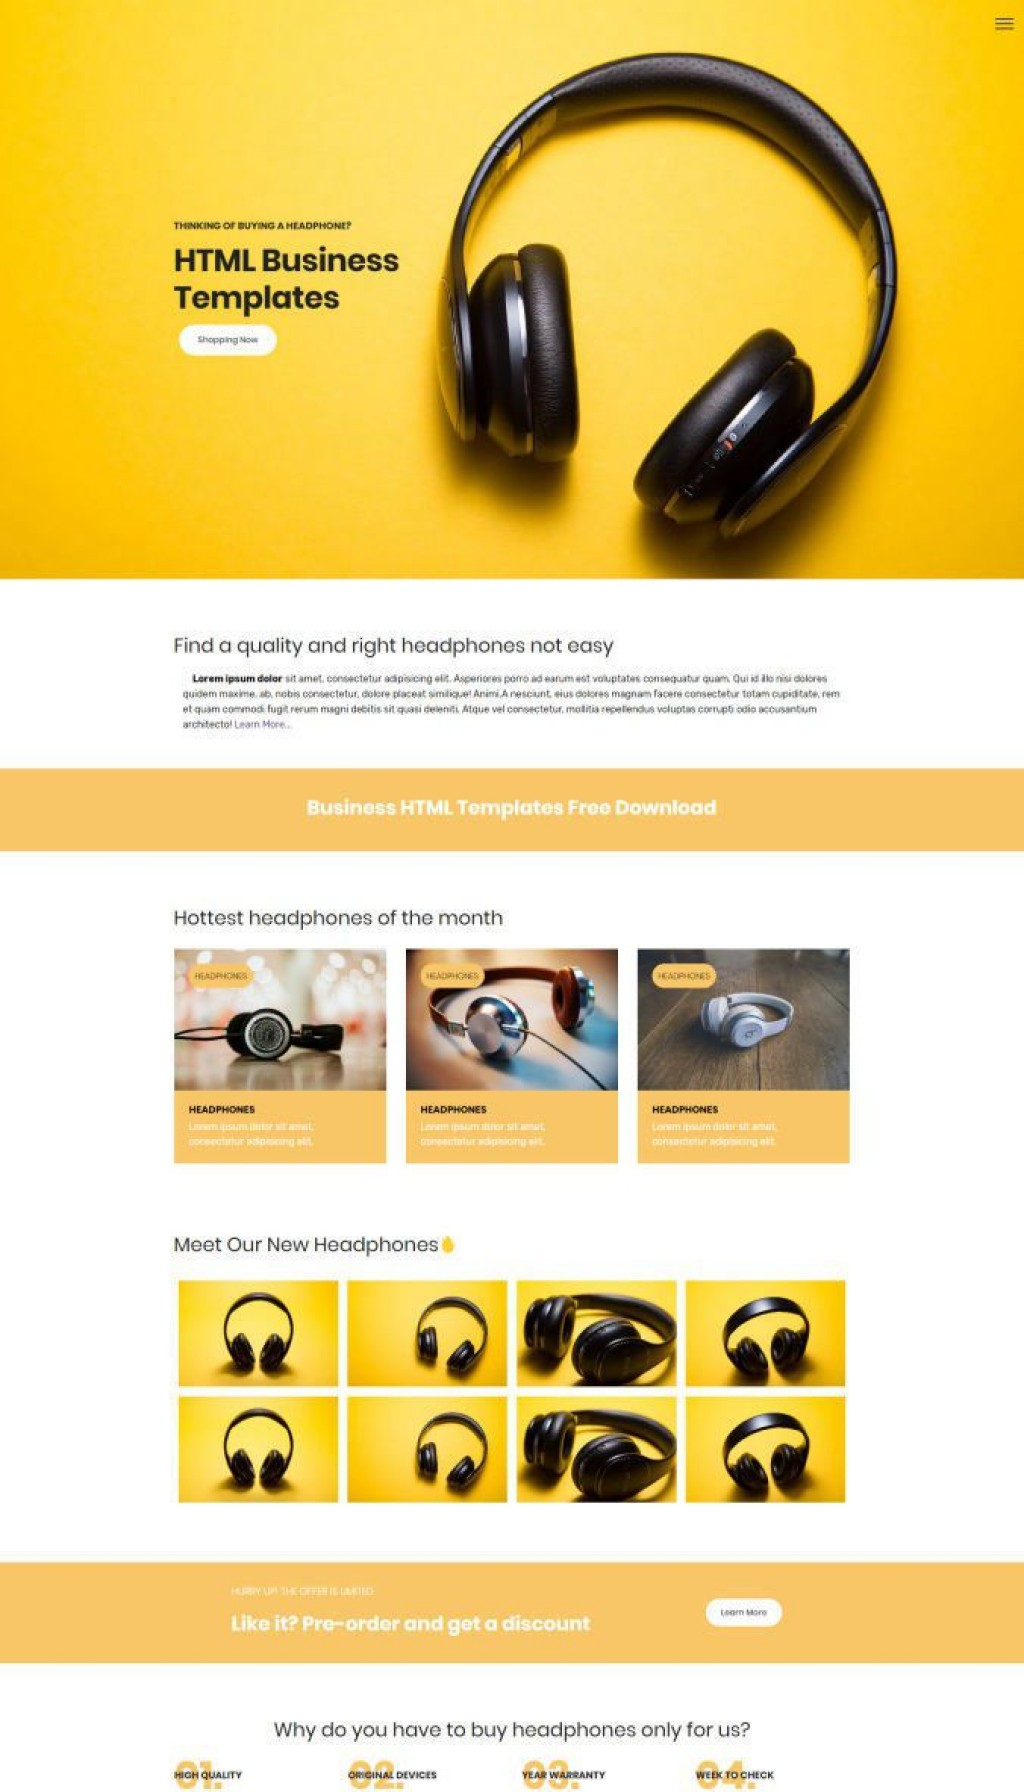 003 Fascinating Simple Web Page Template Free Download Concept  One Website Html With CsLarge